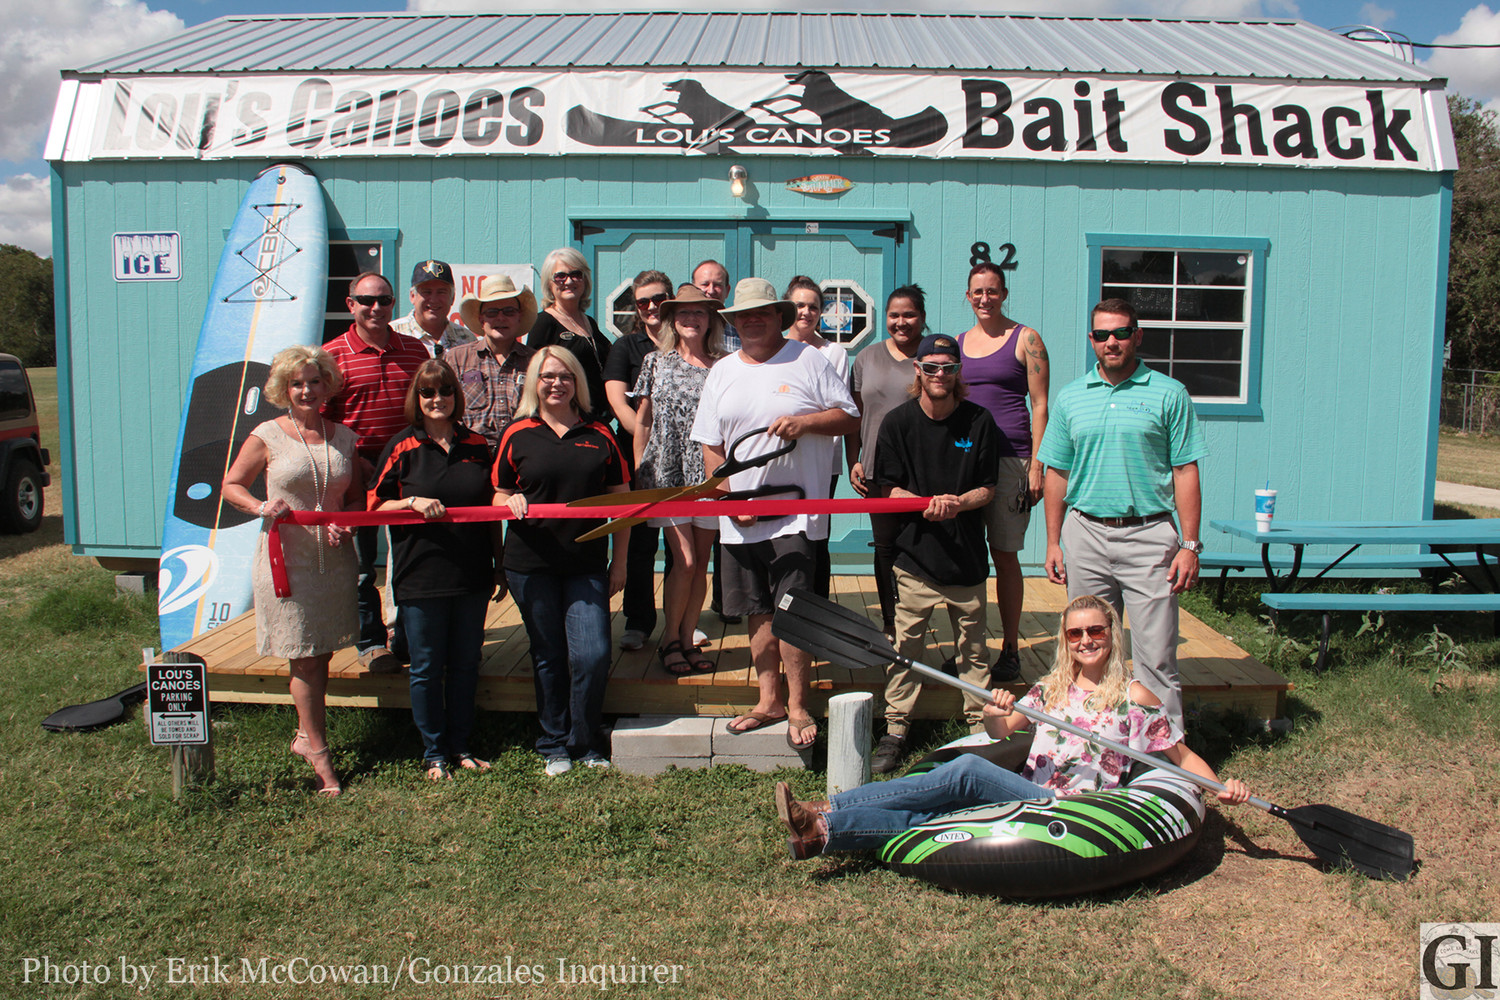 Owners Lou and Cheri Lane Garino of Lou's Canoes hosted a ribbon cutting for their business last week with the Gonzales Chamber of Commerce. The shack offers tube, canoe, and kayak rentals, as well as a selection of live and dead baits for fishing the Guadalupe. The Garinos hope to take advantage of the tourism opportunities on the river where currently none exist.